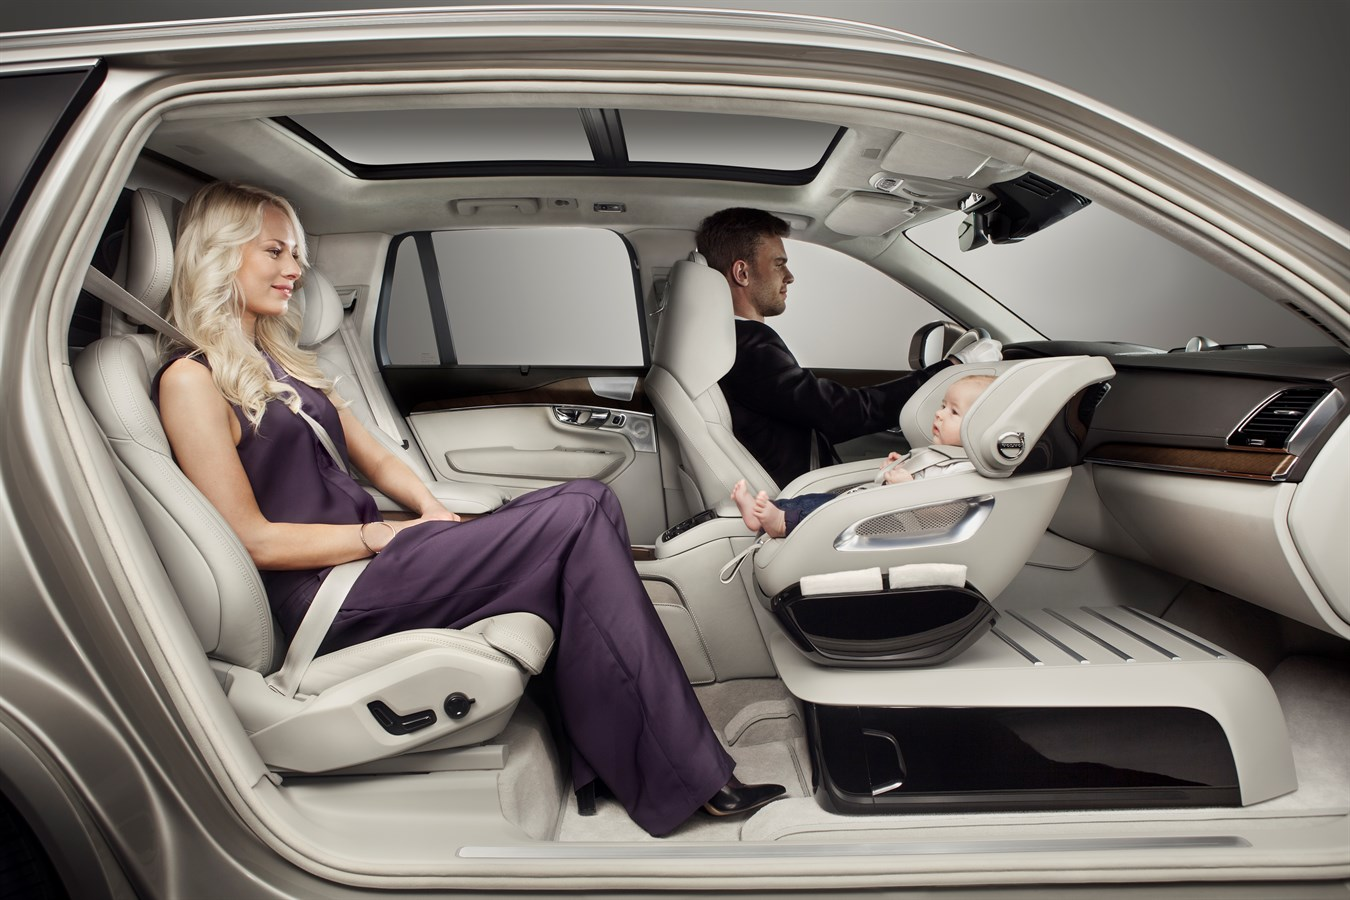 Volvo Cars Adds A Little Luxury With Excellence Child Safety Seat Concept Car Usa Newsroom